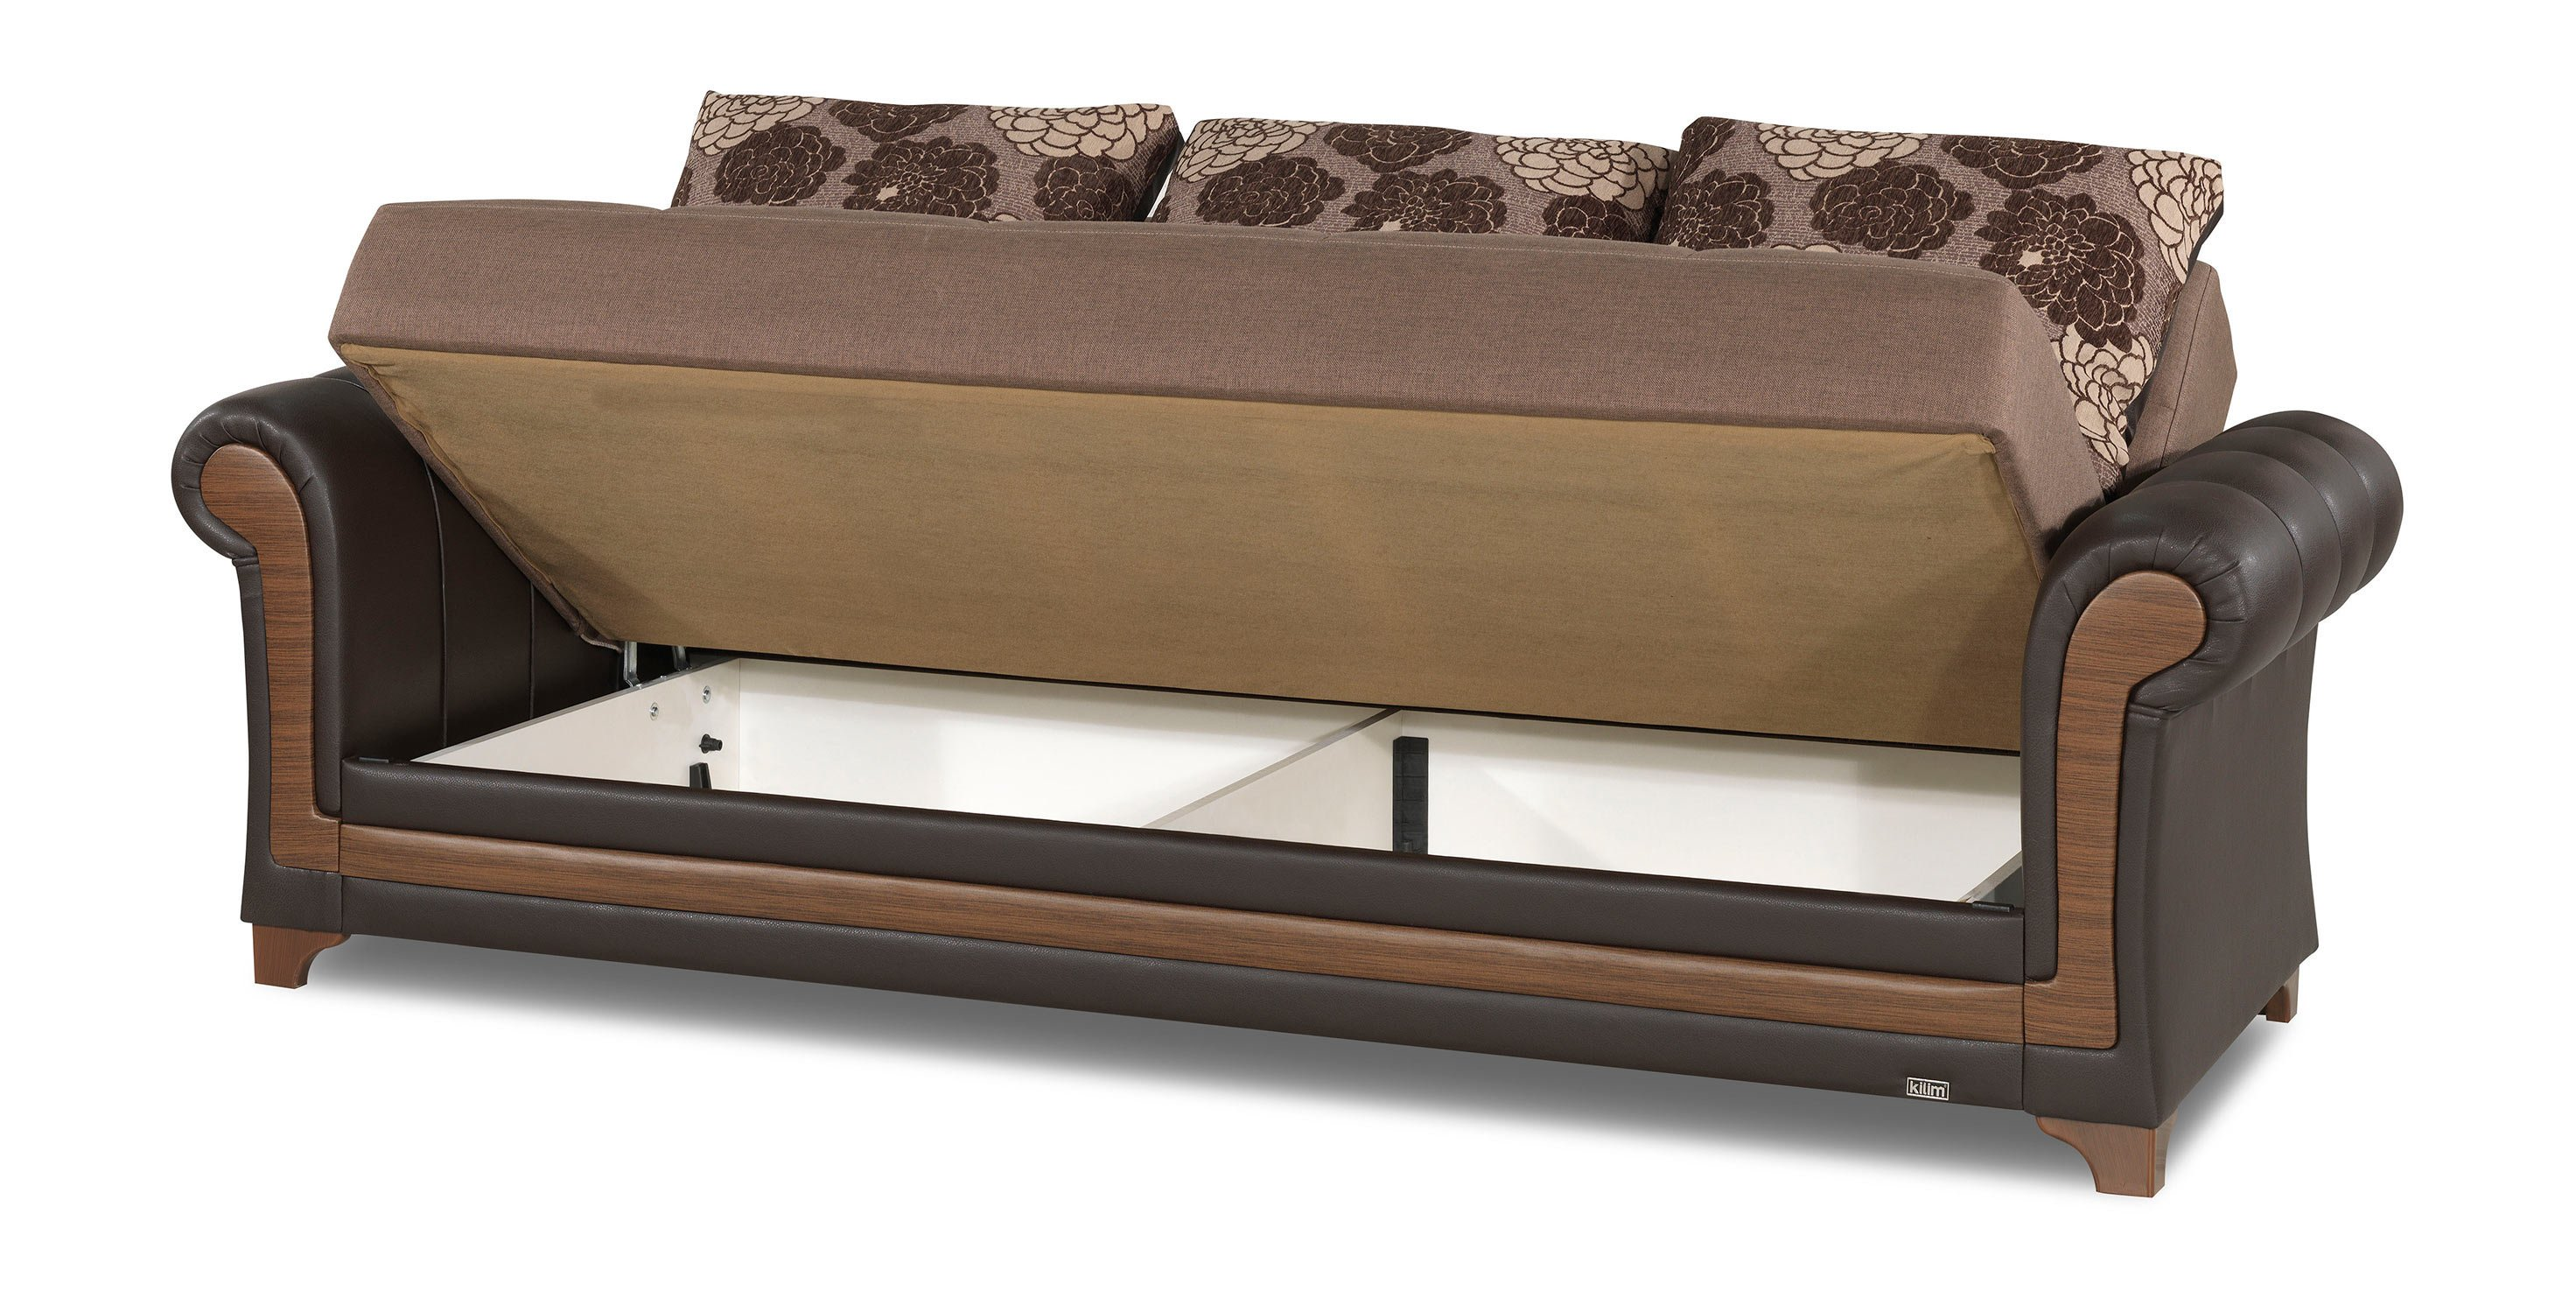 Dream Decor Brown Convertible Sofa Bed by Casamode